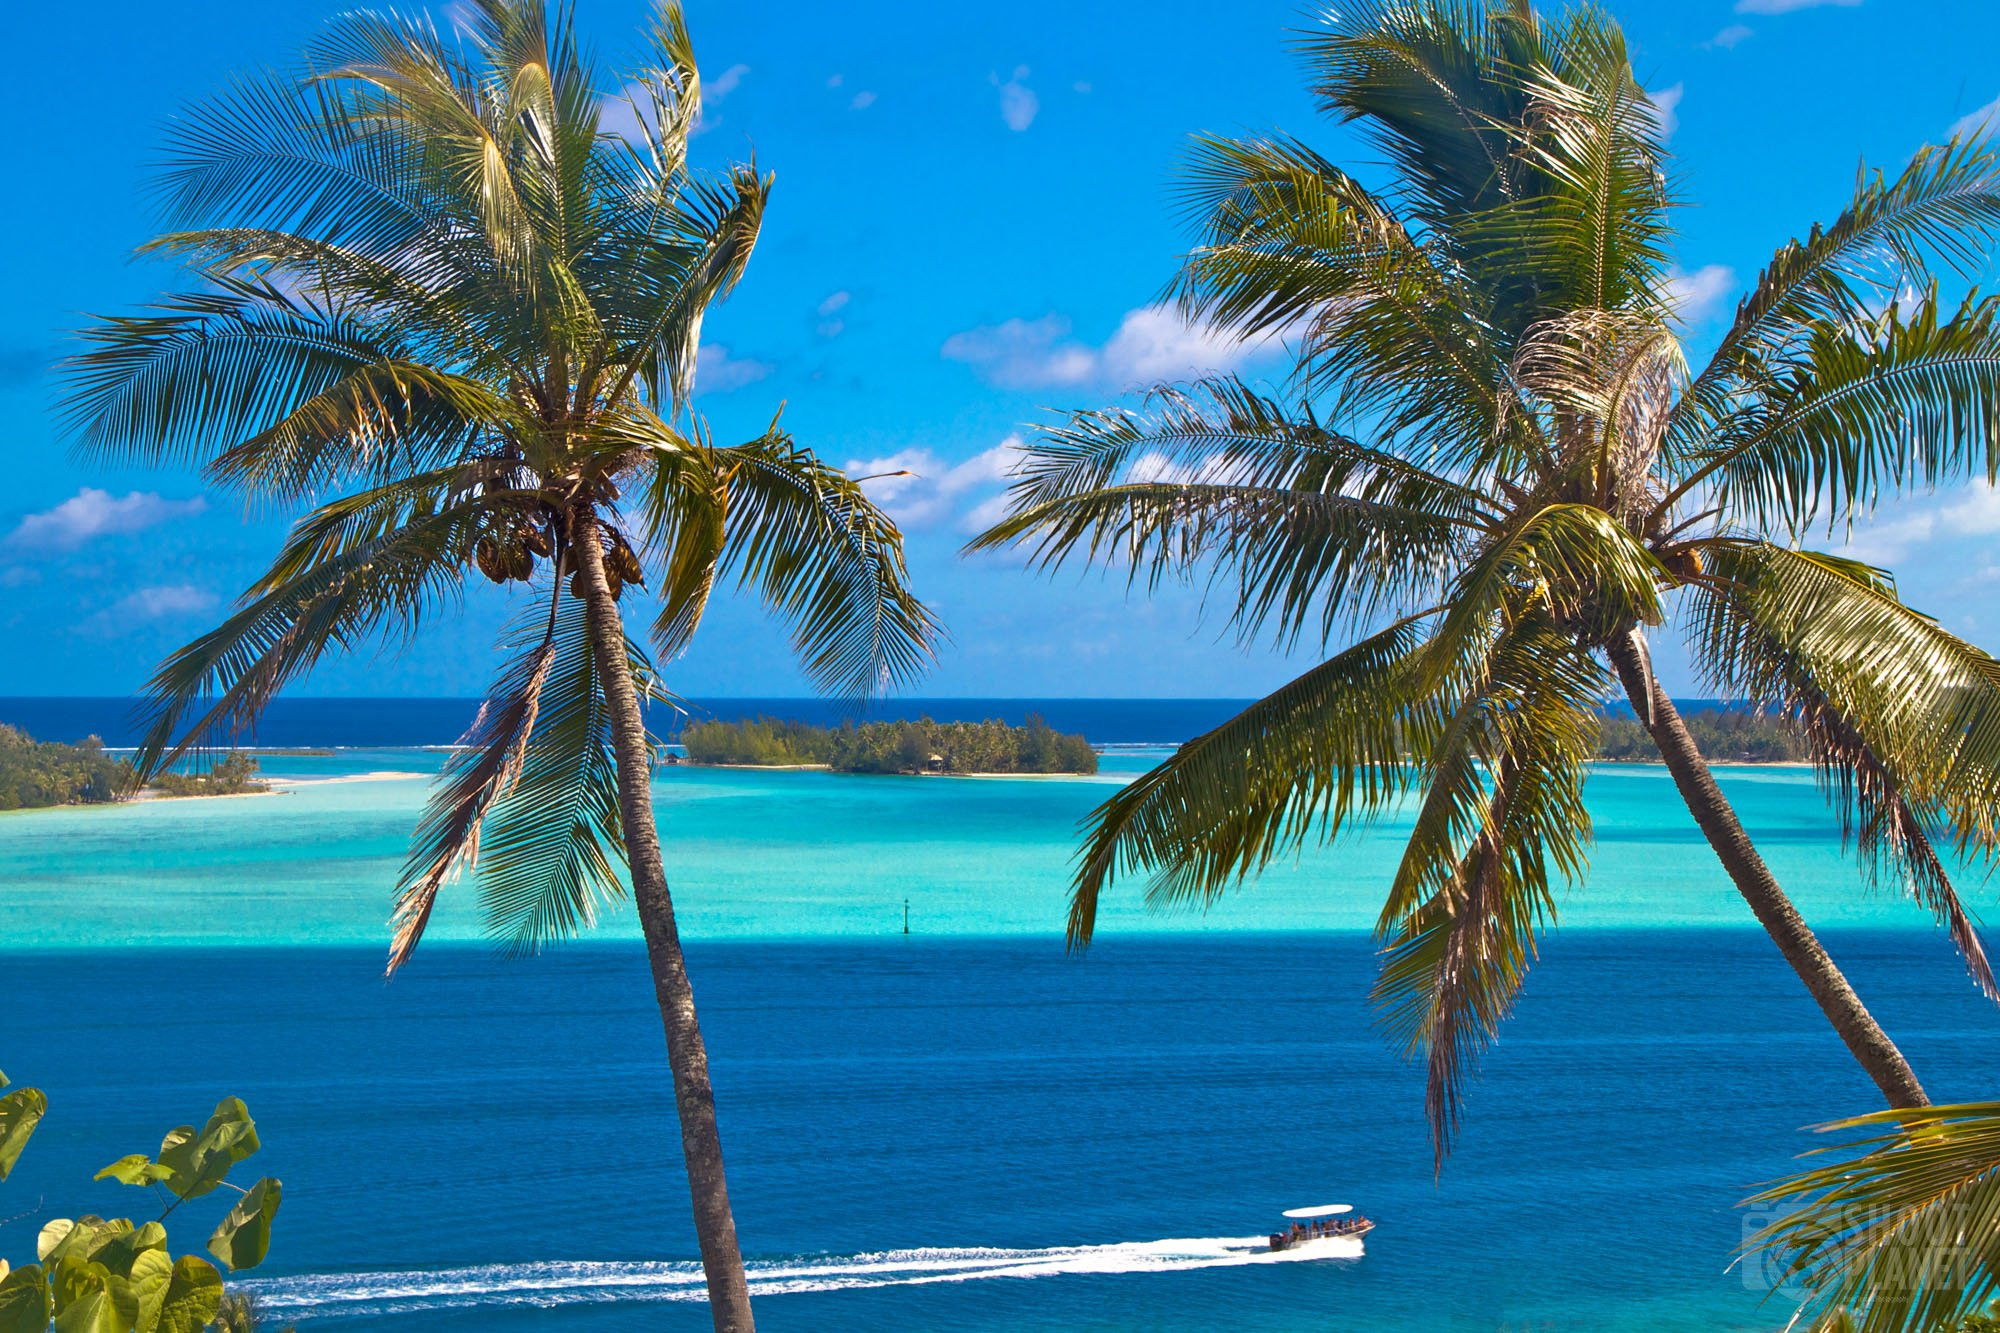 Palm trees and turquoise waters, Bora Bora